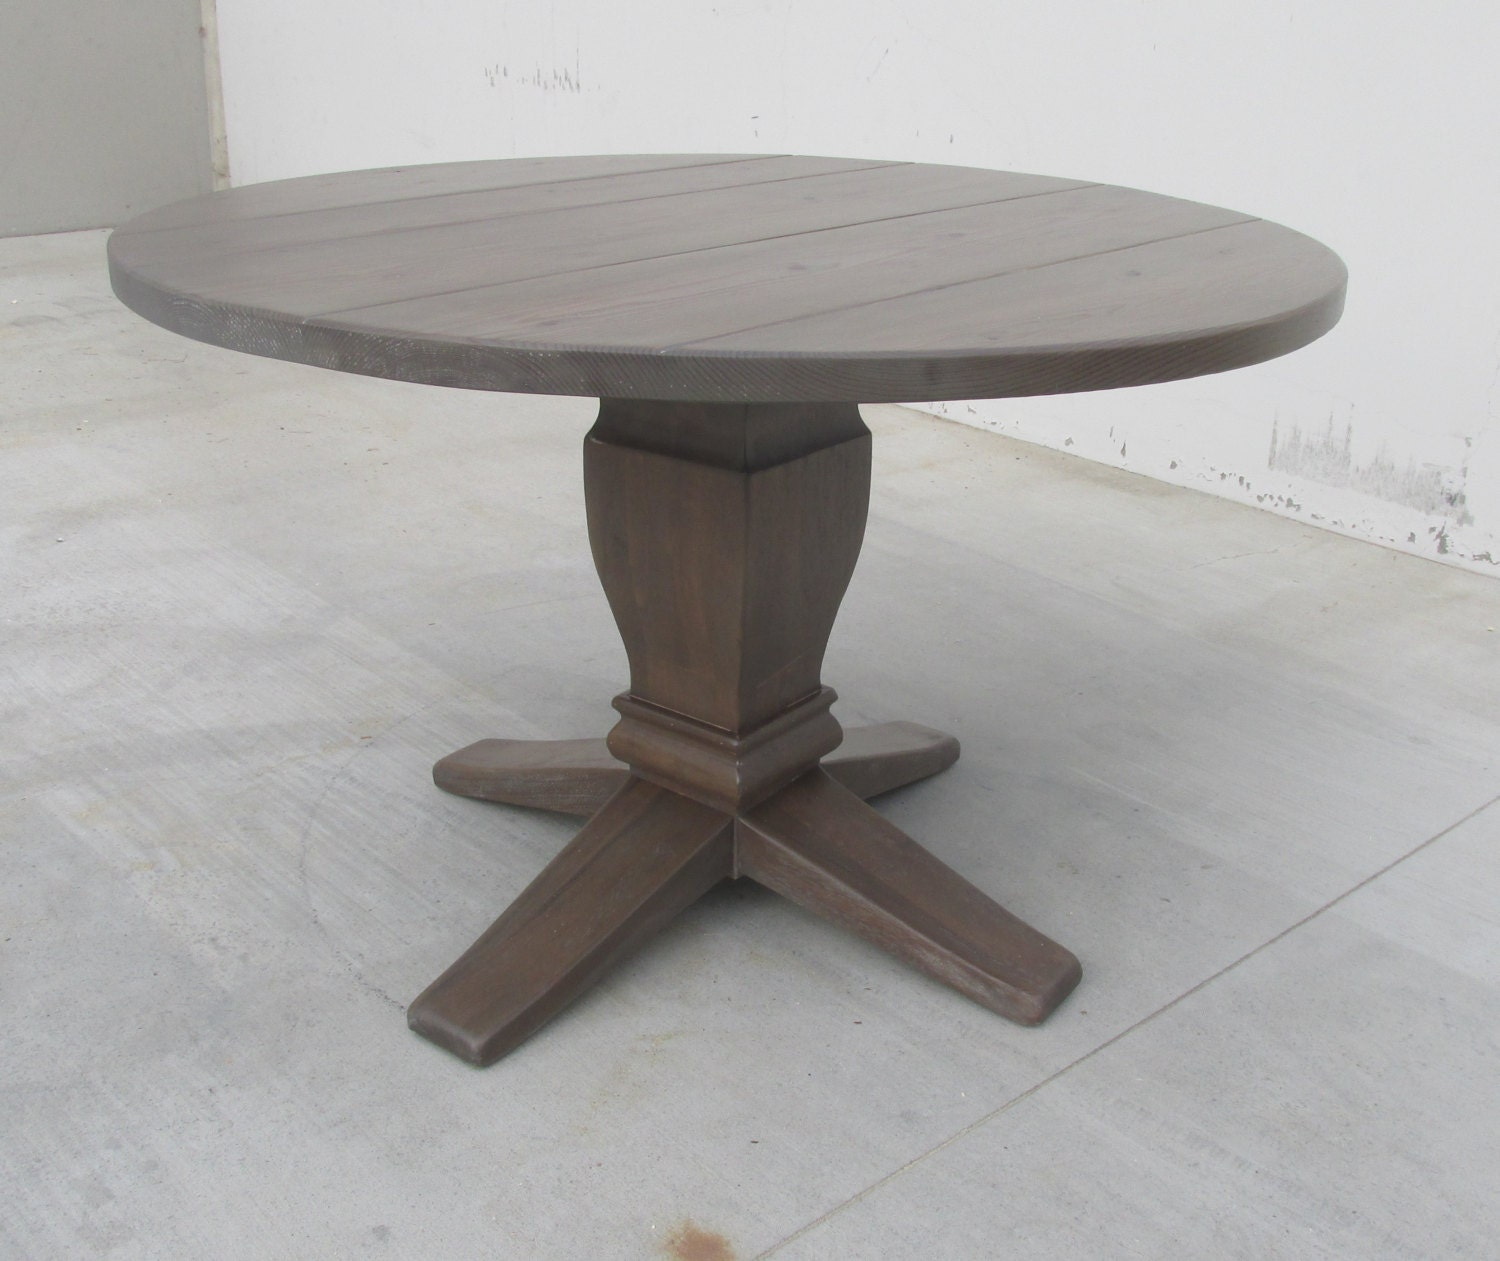 Reclaimed Wood Round Table: Table Round Dining Table Reclaimed Wood Kitchen Table